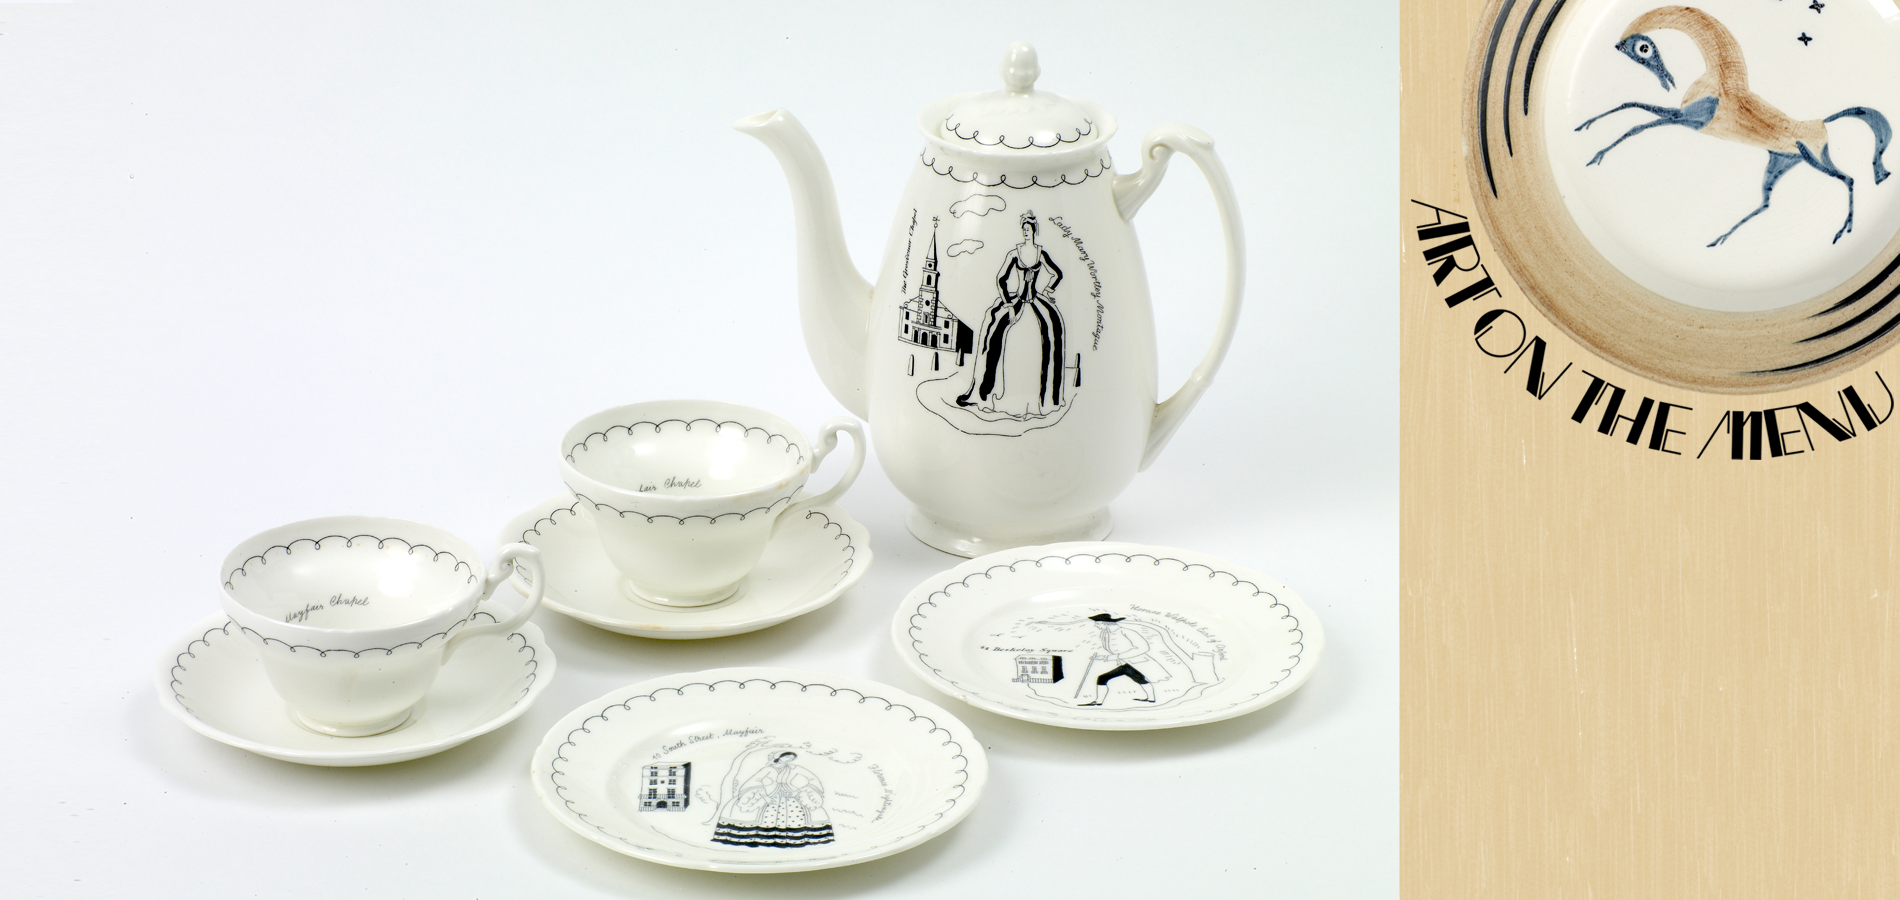 Revitalising Ceramic Design in 1930s Britain